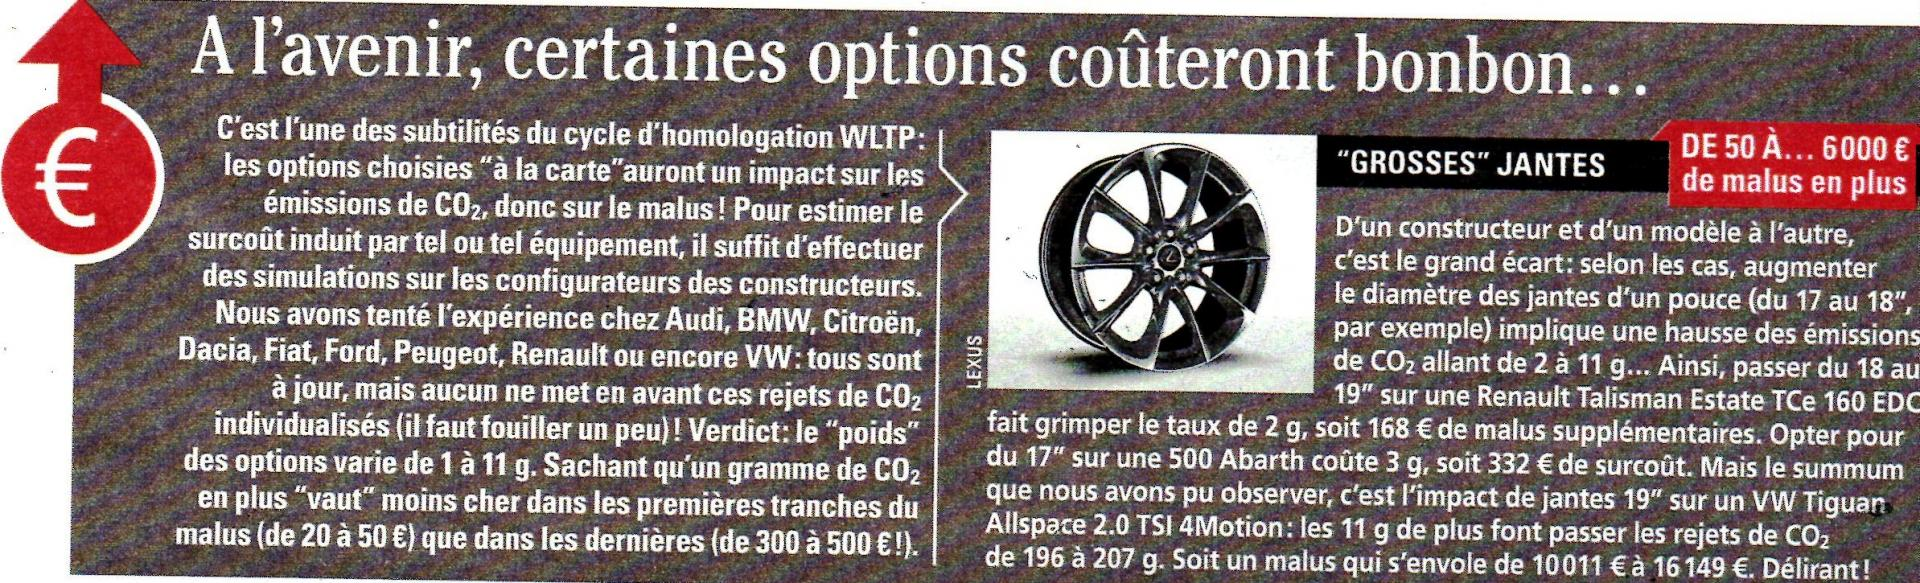 Options voitures taxees